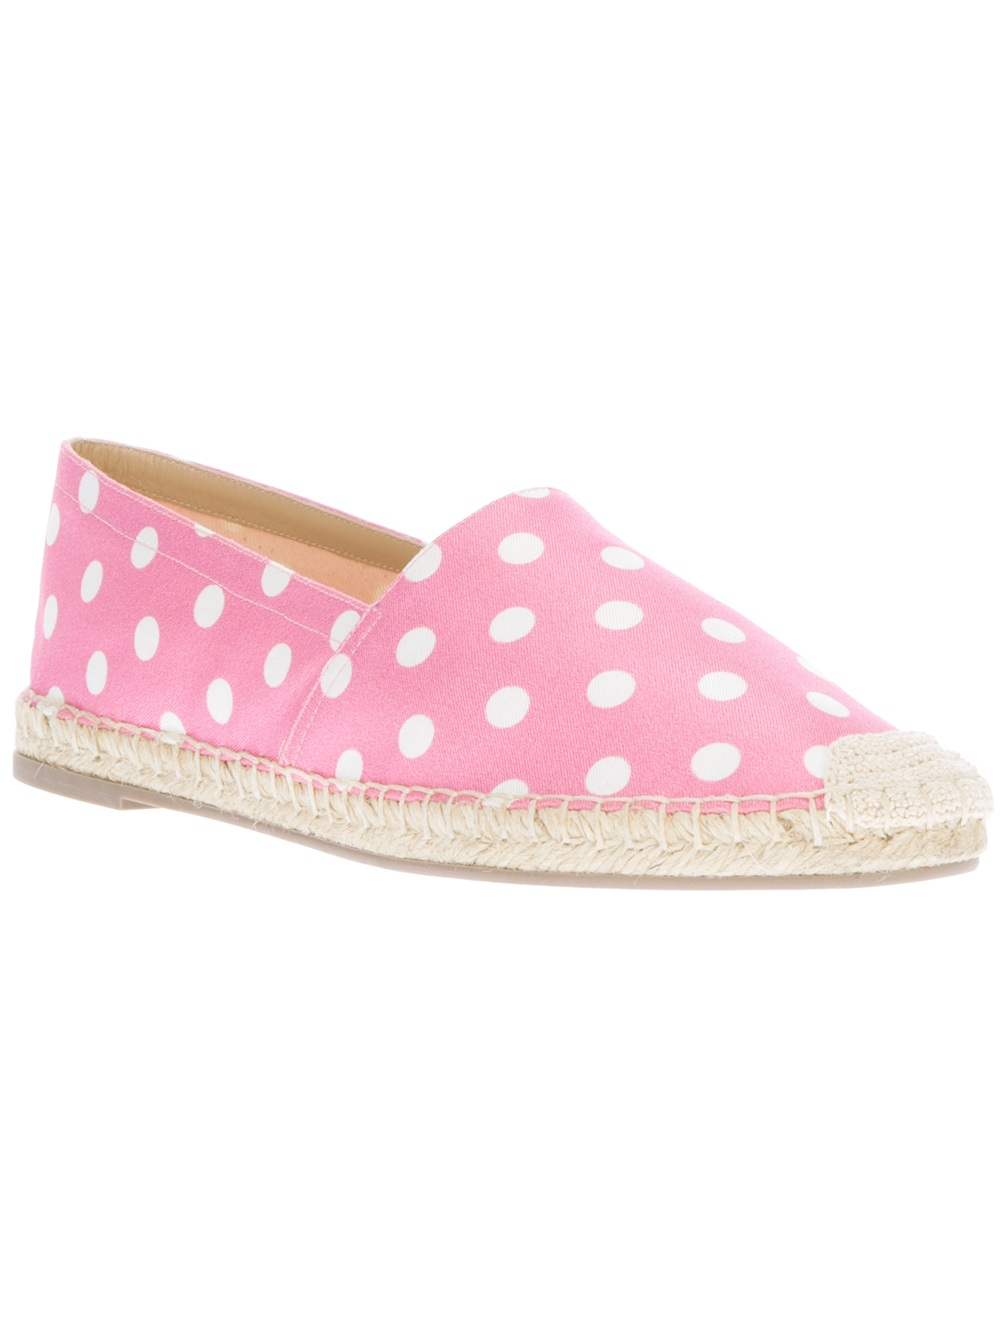 Valentino Polka Dot Espadrilles In Pink Lyst